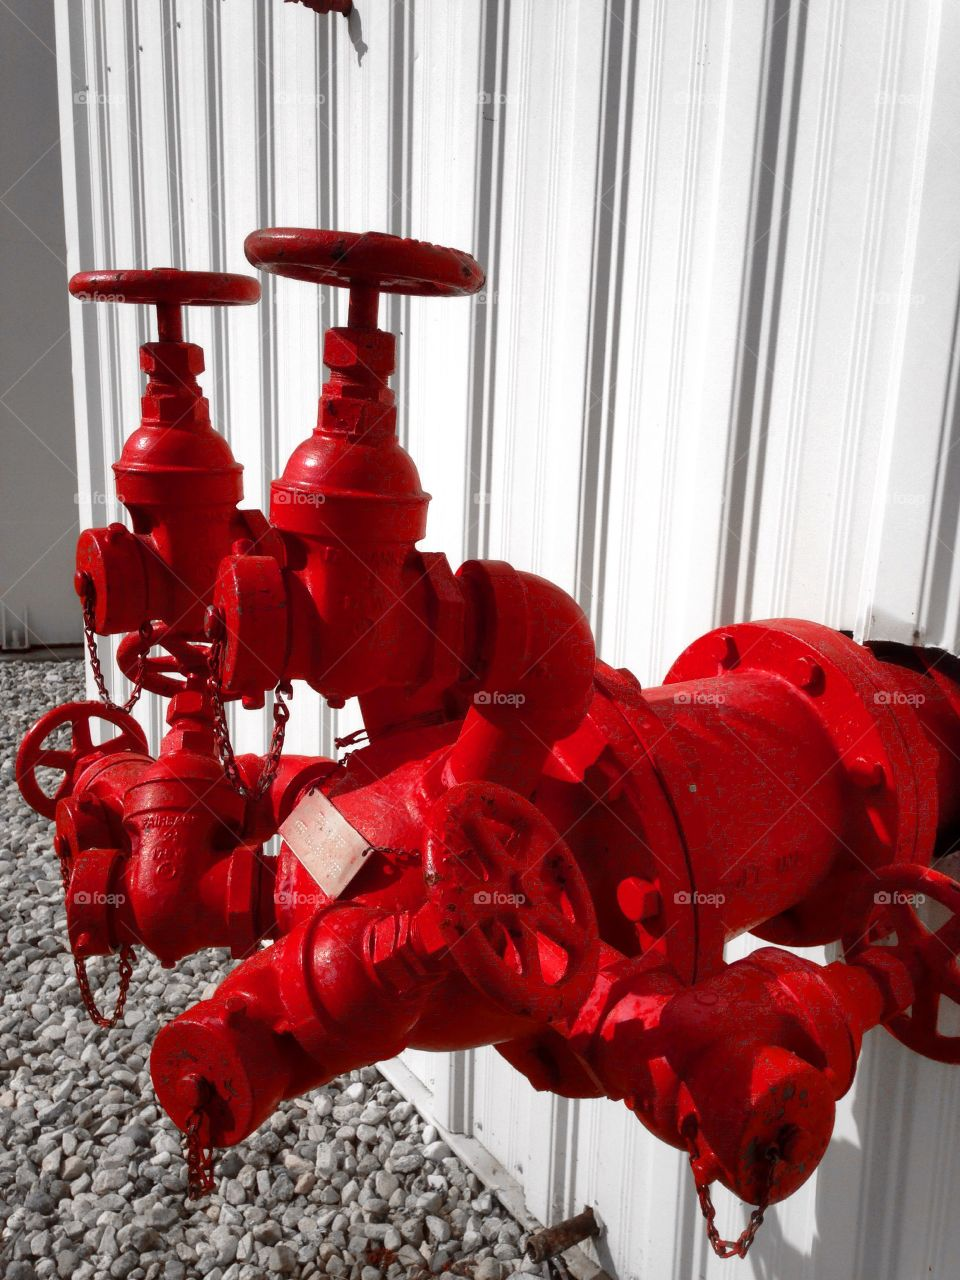 Close-up of a red industrial valve